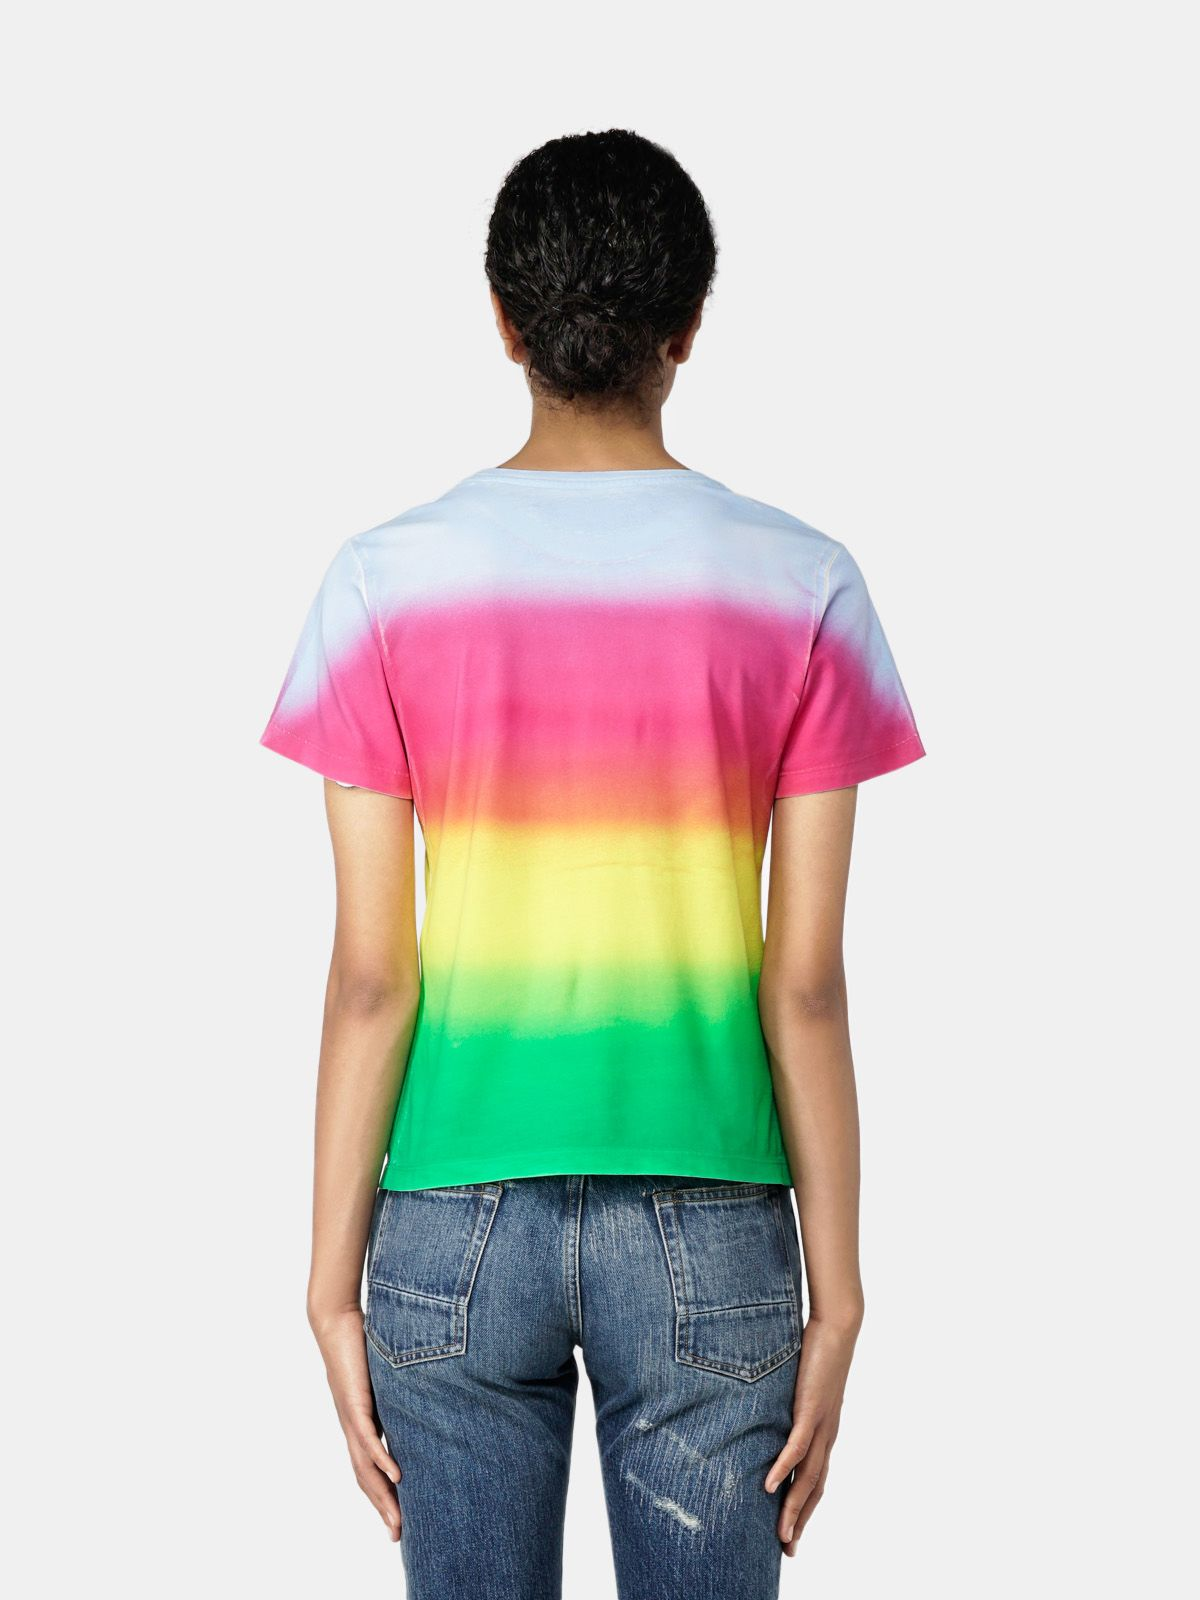 Golden Goose - Ania tie-dye effect T-shirt with print on the front in